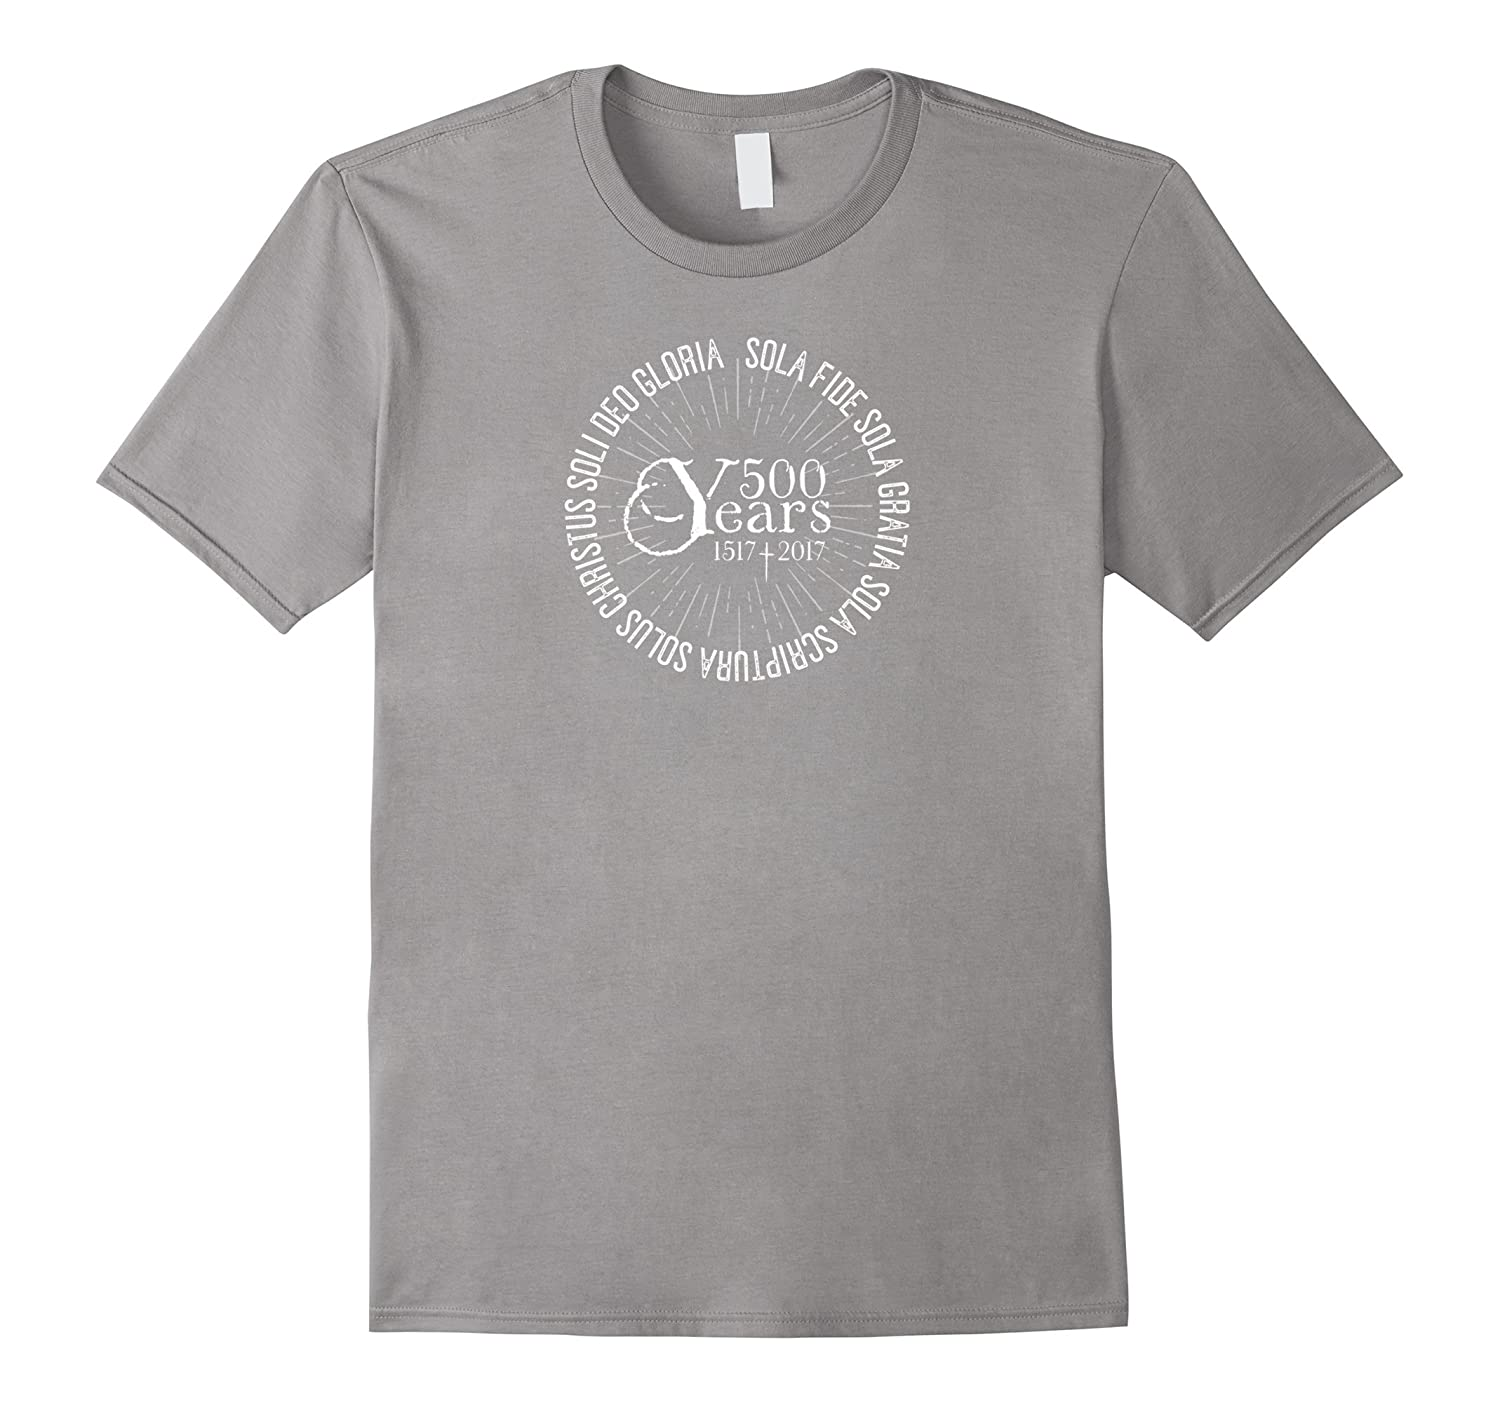 500 YEARS Reformation Shirt with 5 Solas TEE Tshirt-PL